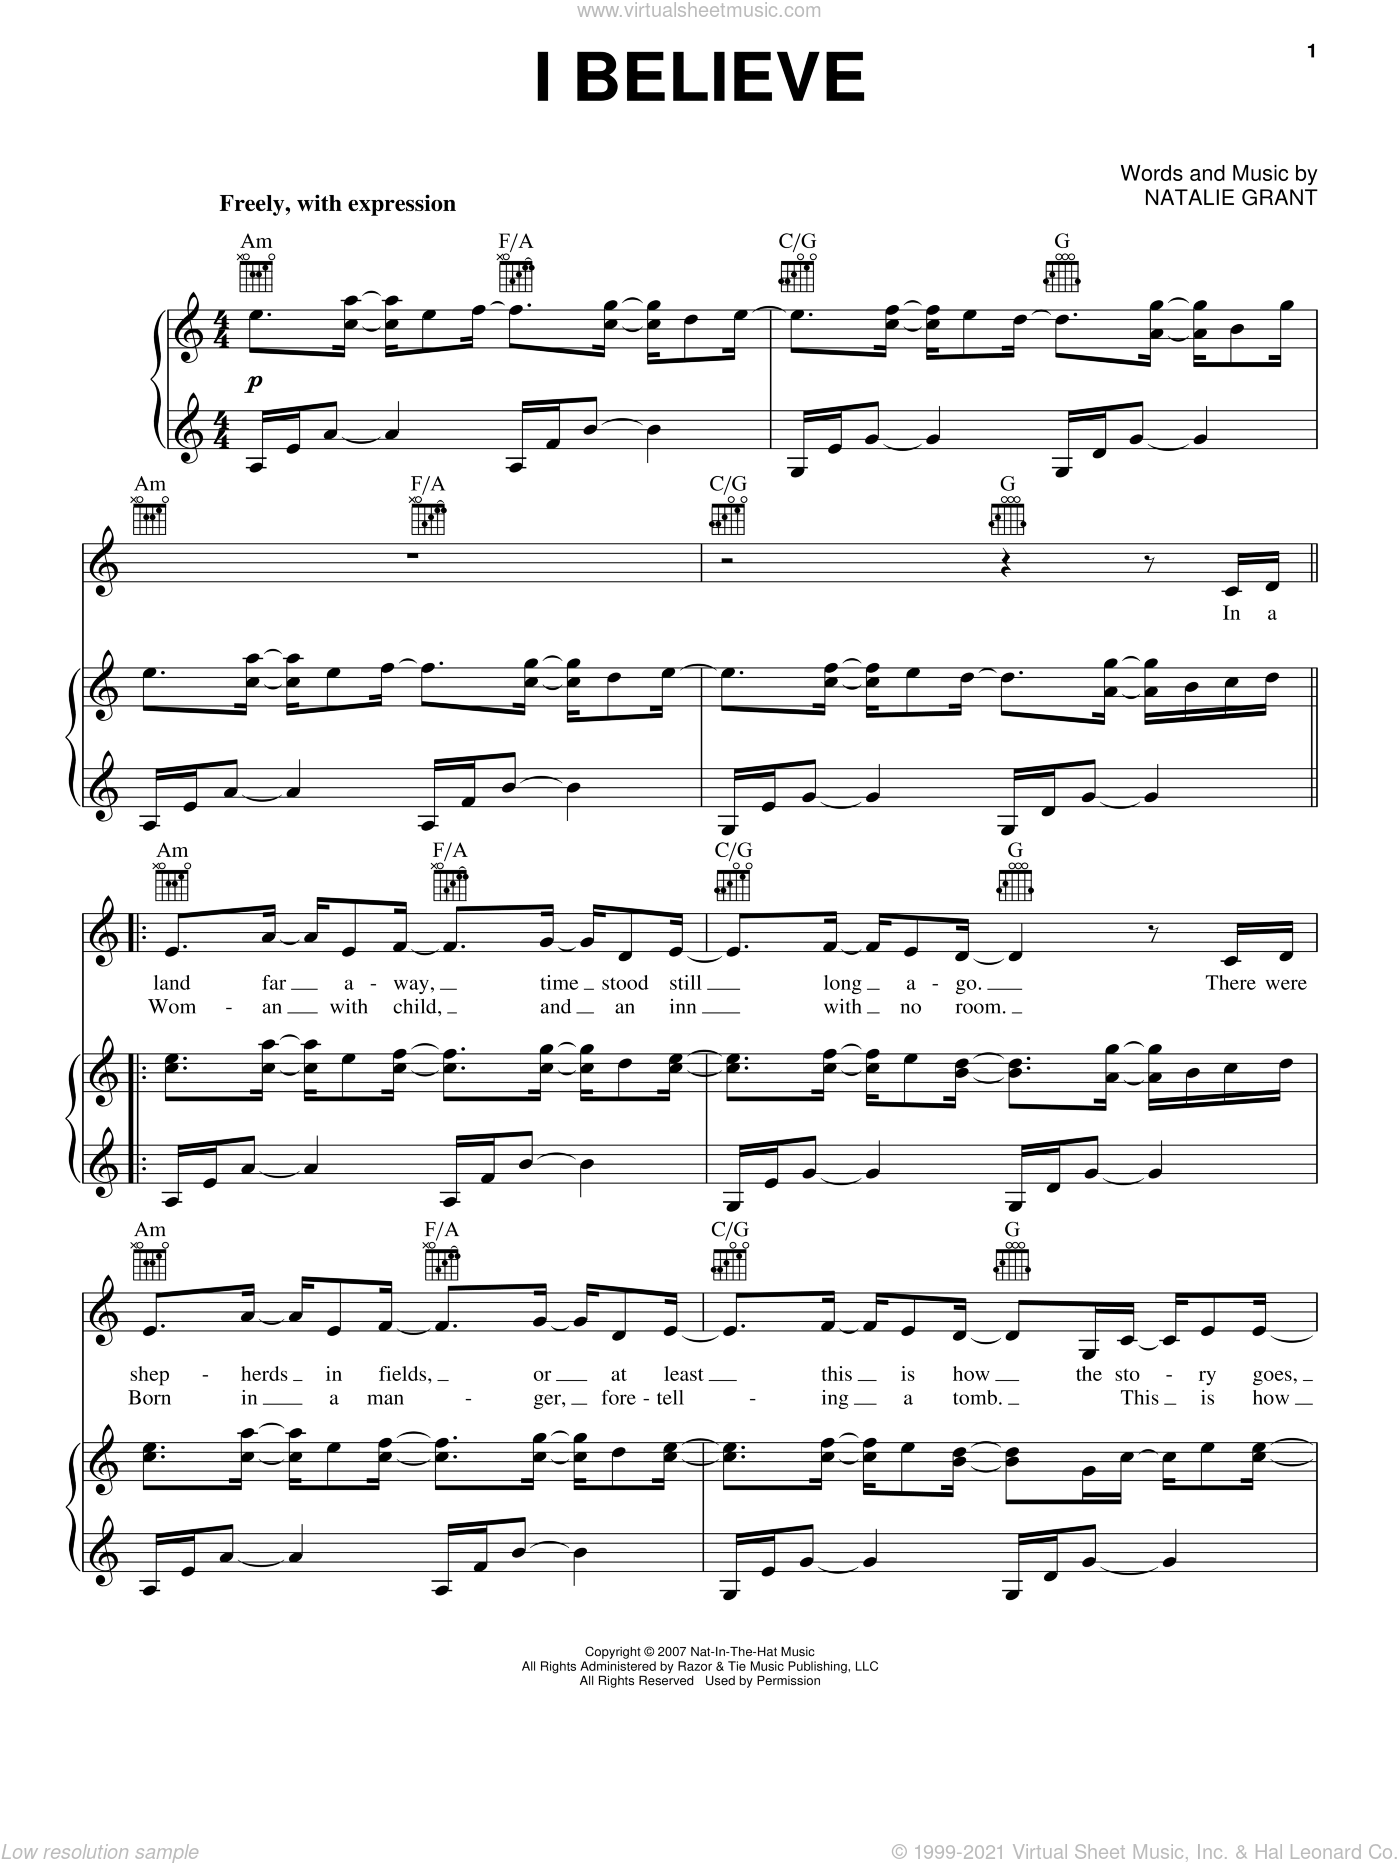 I Believe sheet music for voice, piano or guitar by Natalie Grant, intermediate skill level